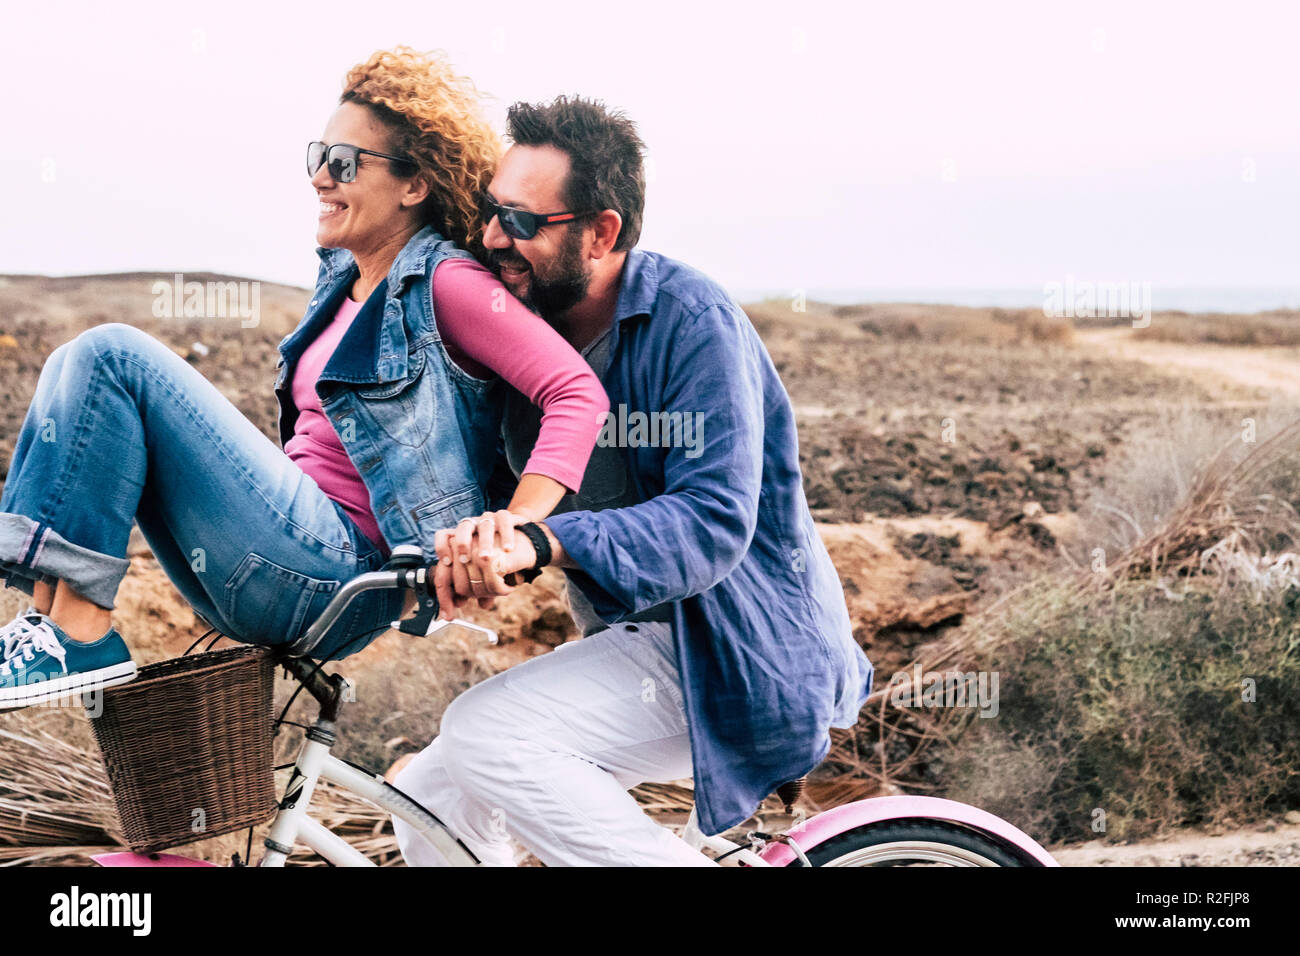 happy adult caucasian, couple having fun with bicycle in outdoor leisure activity. concept of active playful people with bike during vacation - everyday joy lifestyle withouth age limitation - man carry woman and both have fun and laugh a lot with wind in the air - Stock Image